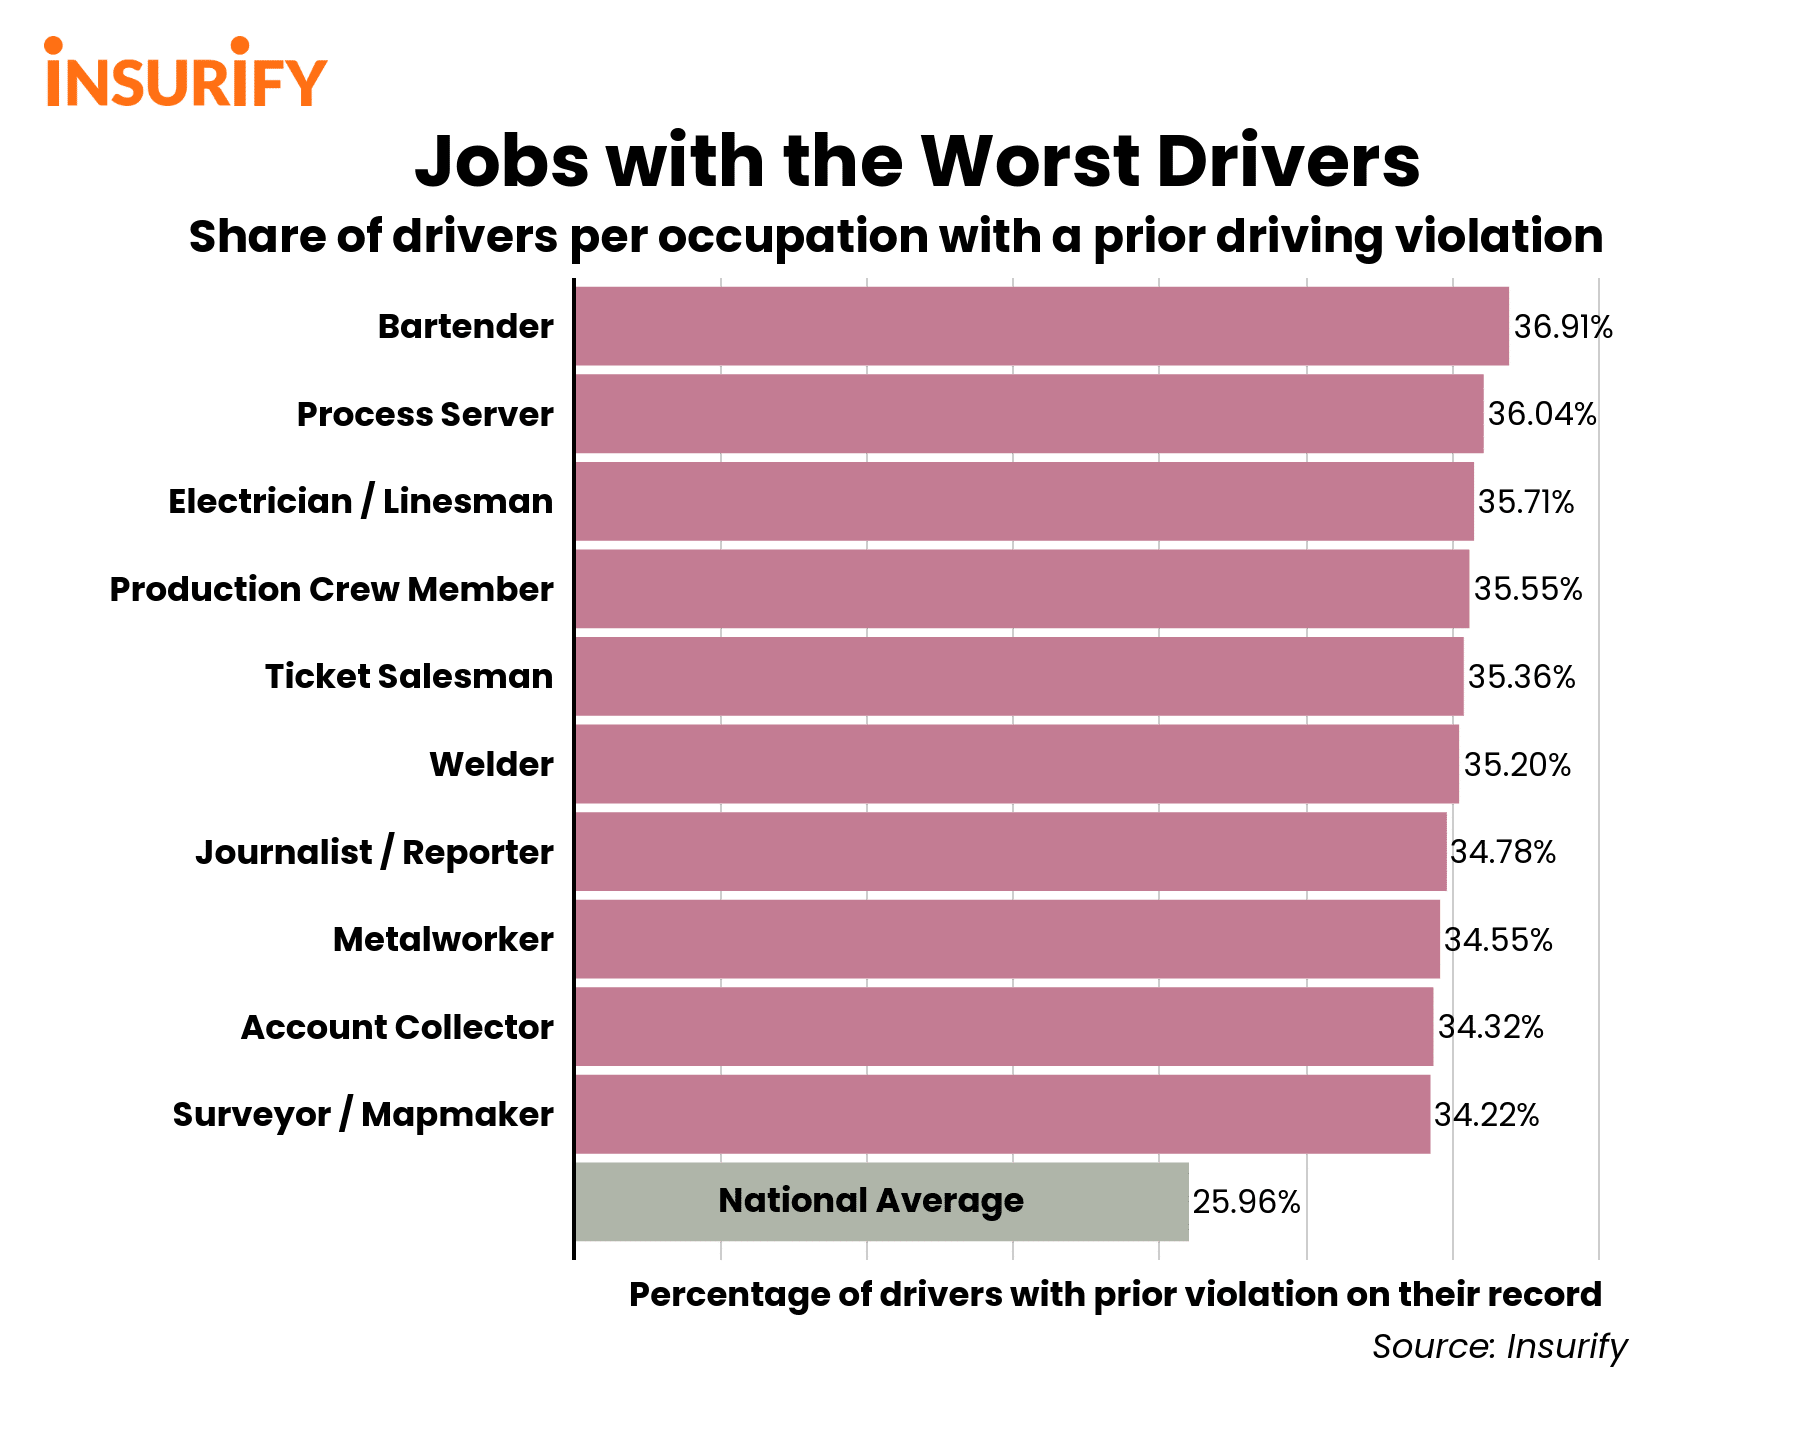 Bar graph showing the incident rates of the jobs with the worst drivers.